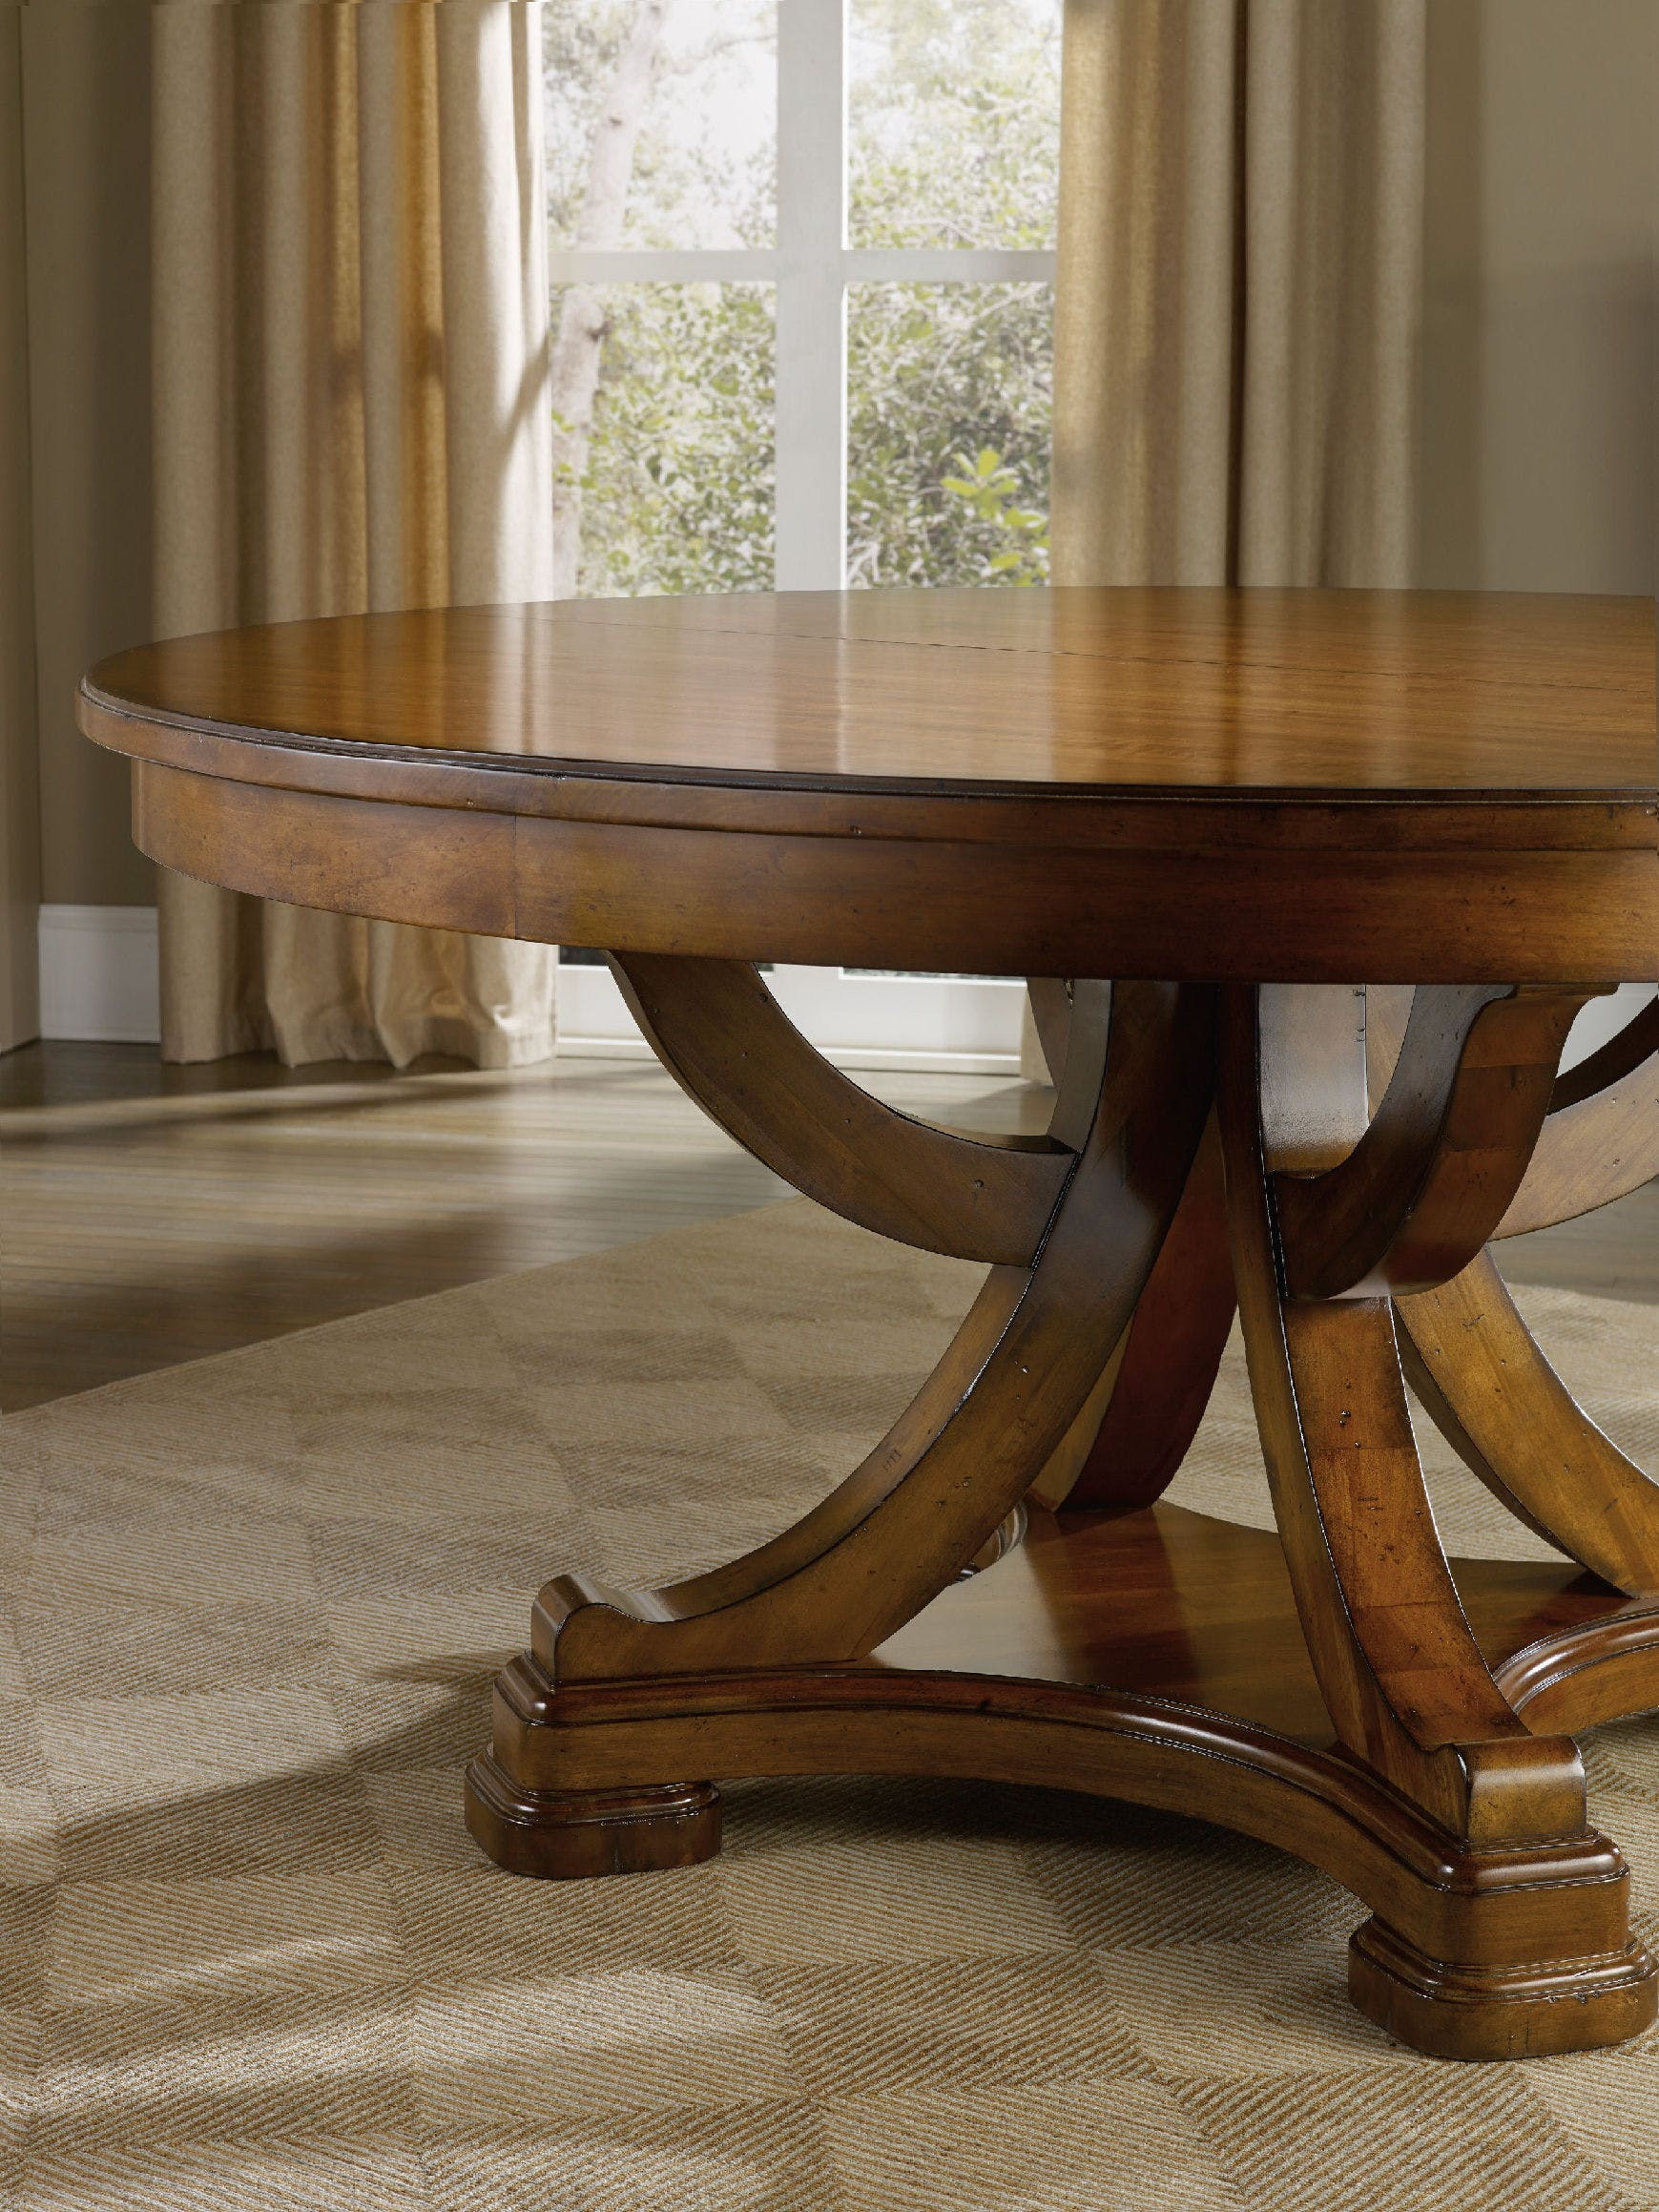 Round Pedestal Dining Table for Family Dining Style